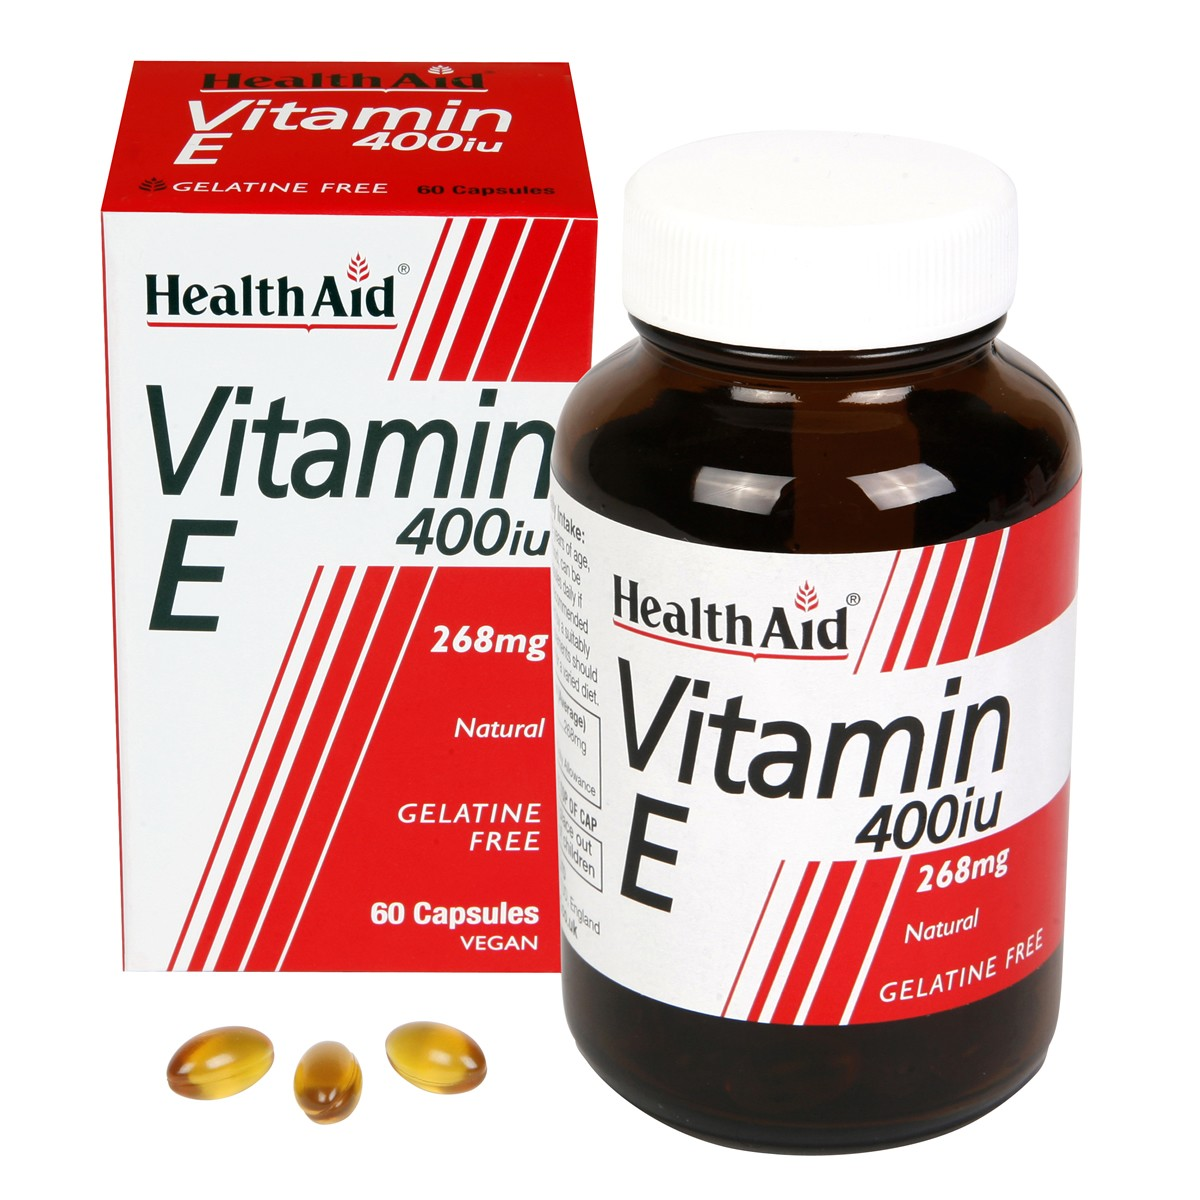 HealthAid Vitamin E 400iu Natural Vegicaps